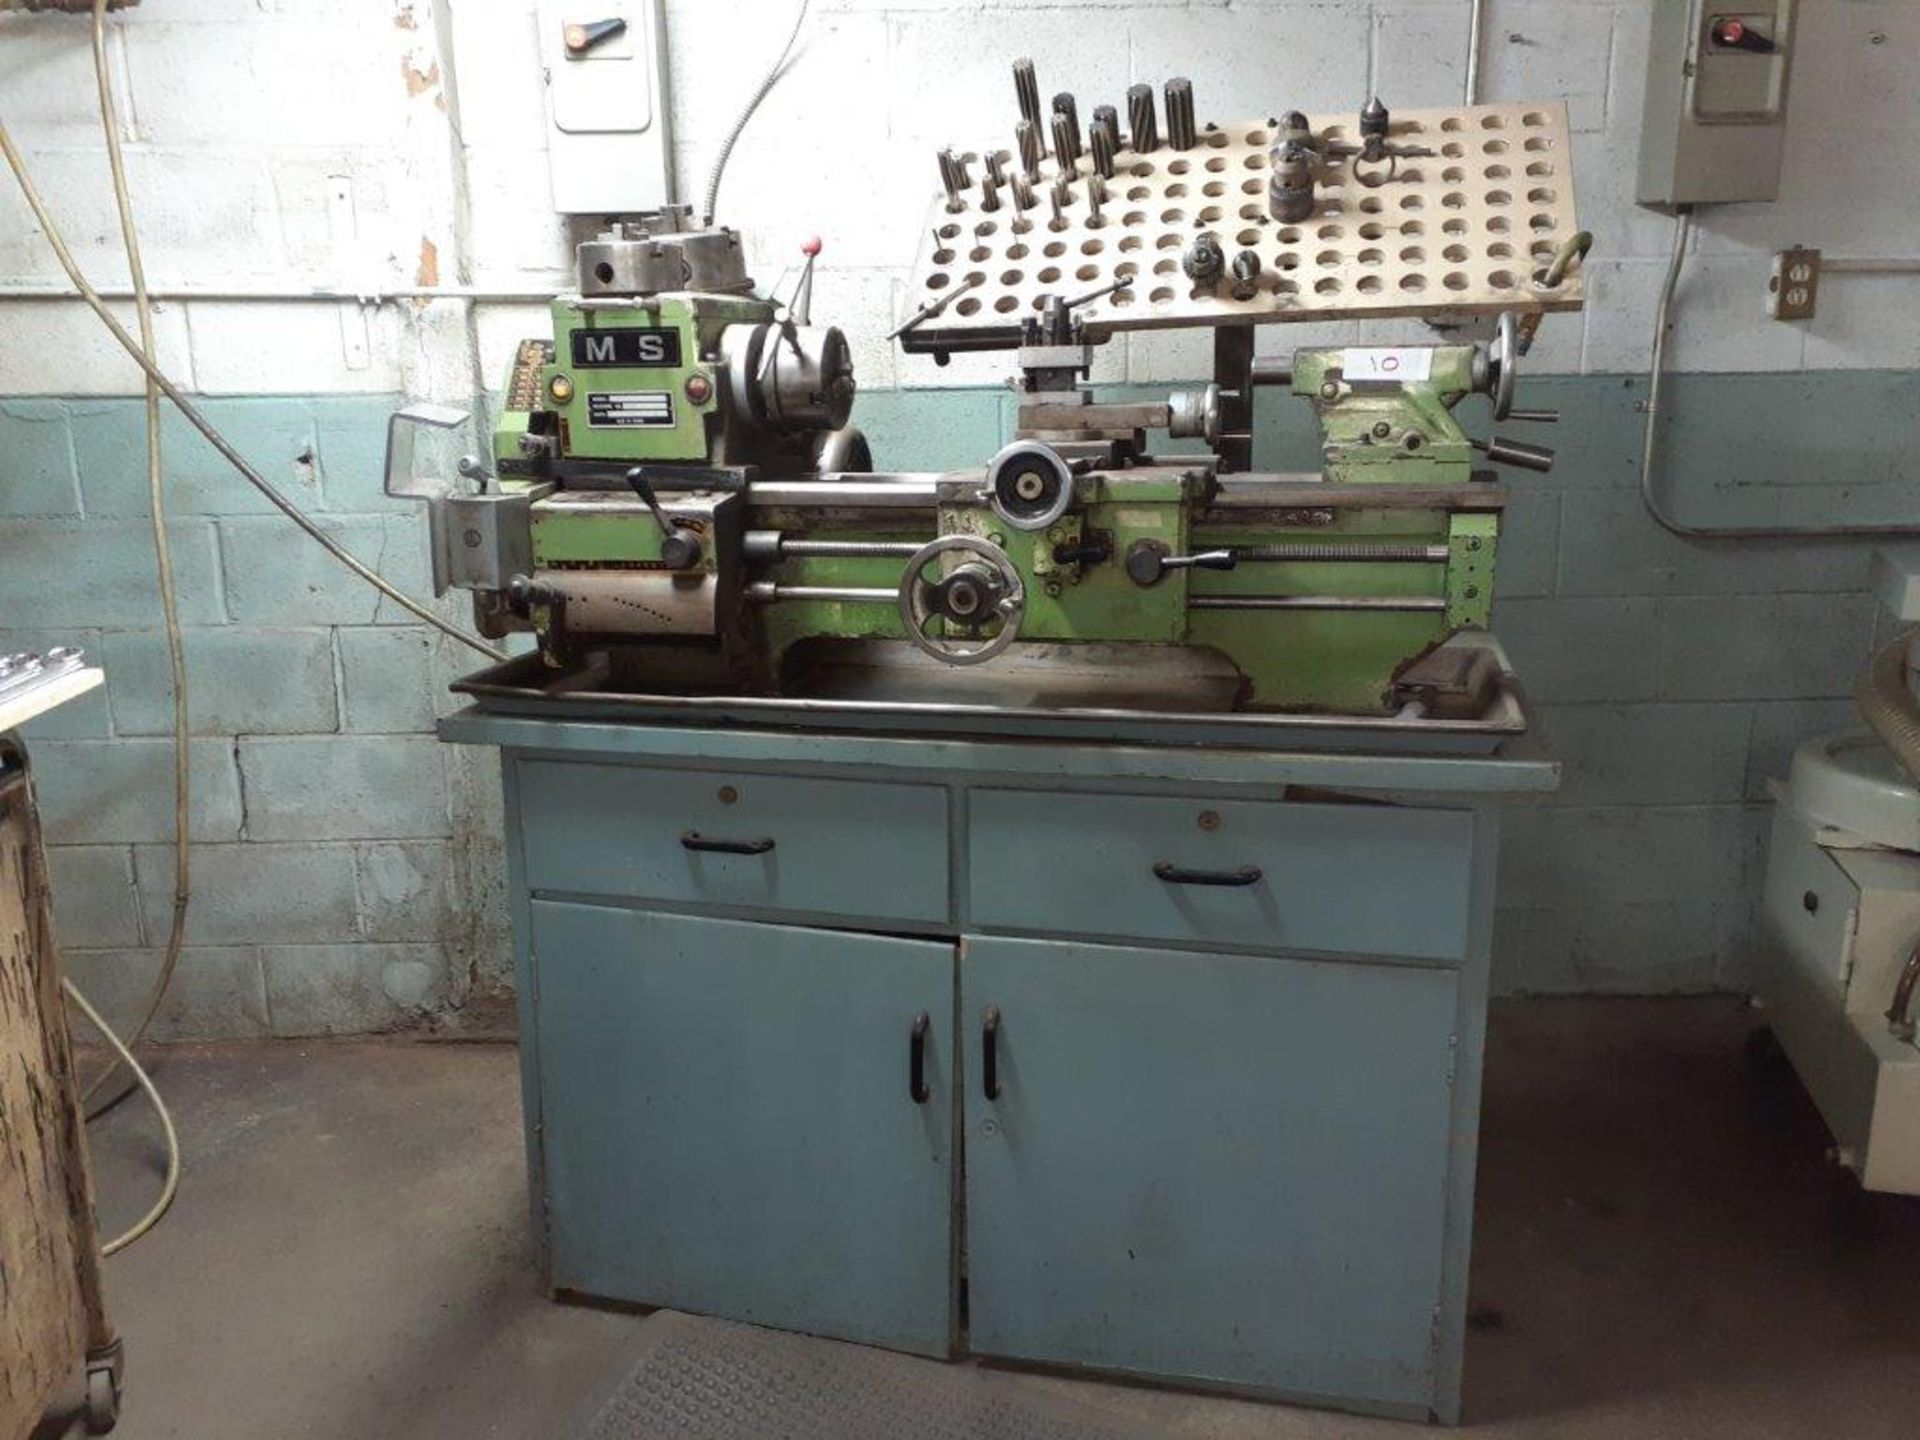 """MS Metal Lathe, 20"""" open, mod: SS+23, c/w Wooden Base & Chuck Drills - Image 2 of 4"""